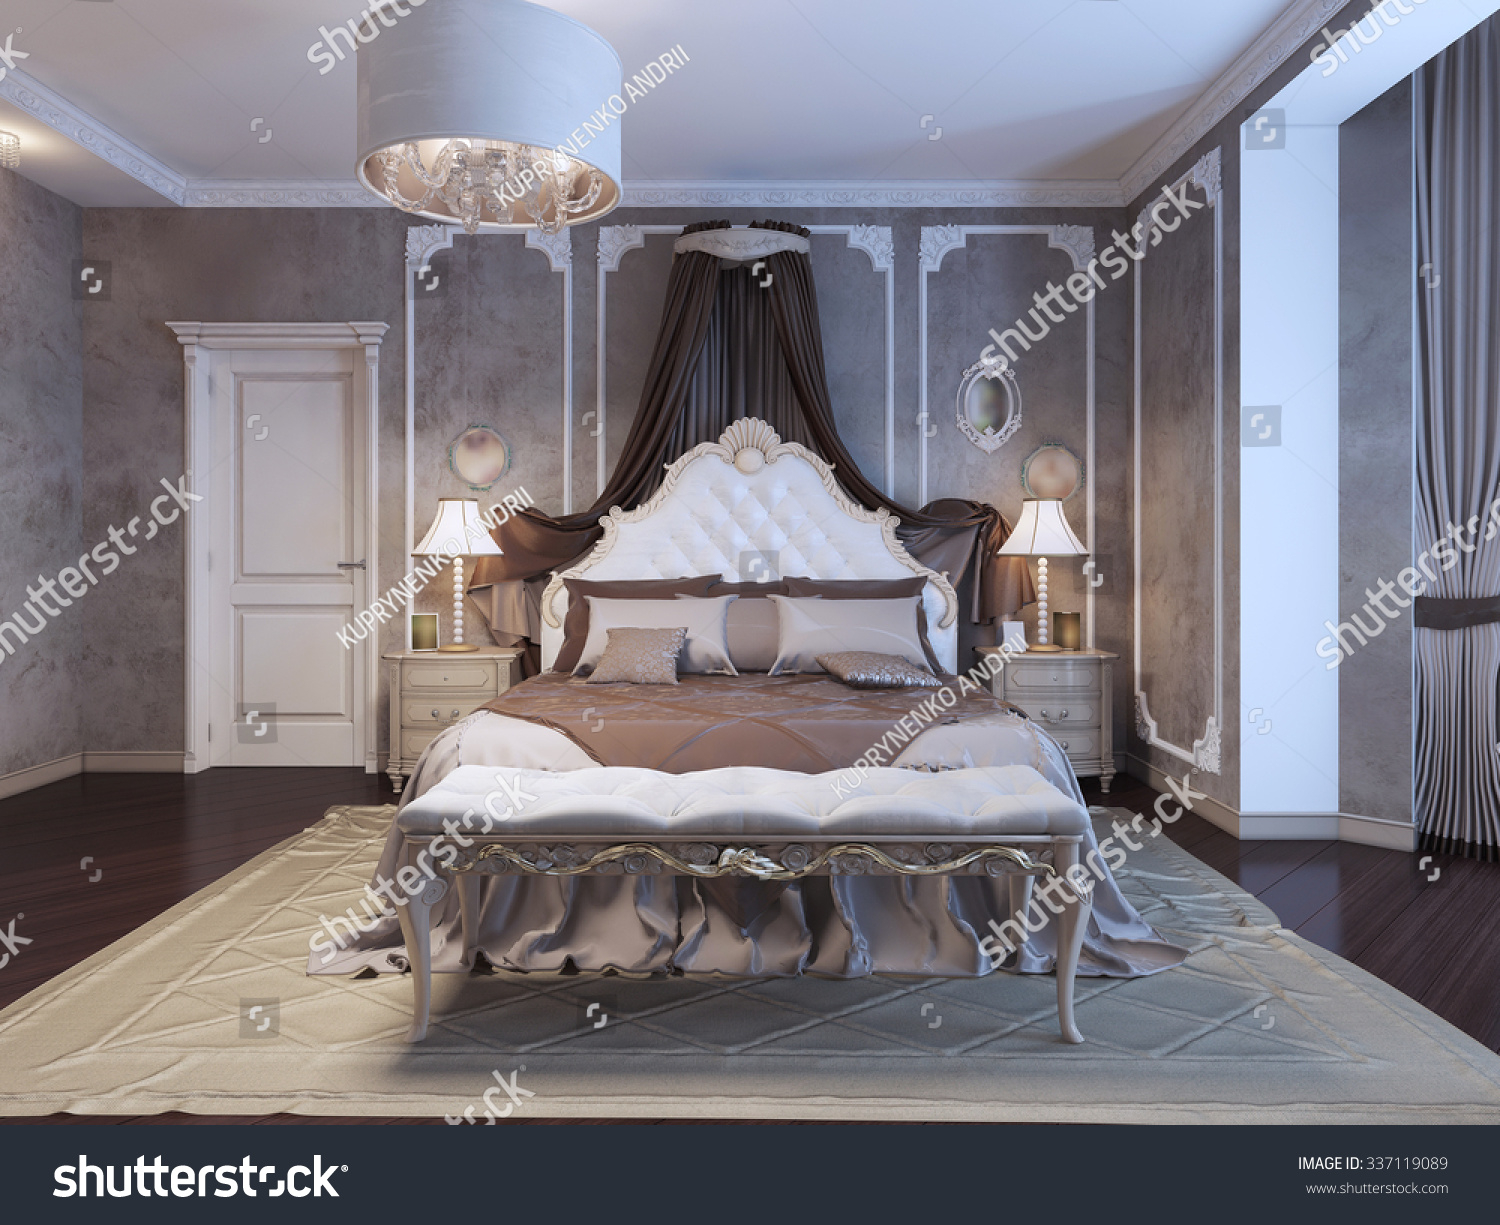 Neoclassical bedroom with frame molding on walls  3D render. Neoclassical Bedroom Frame Molding On Walls Stock Illustration